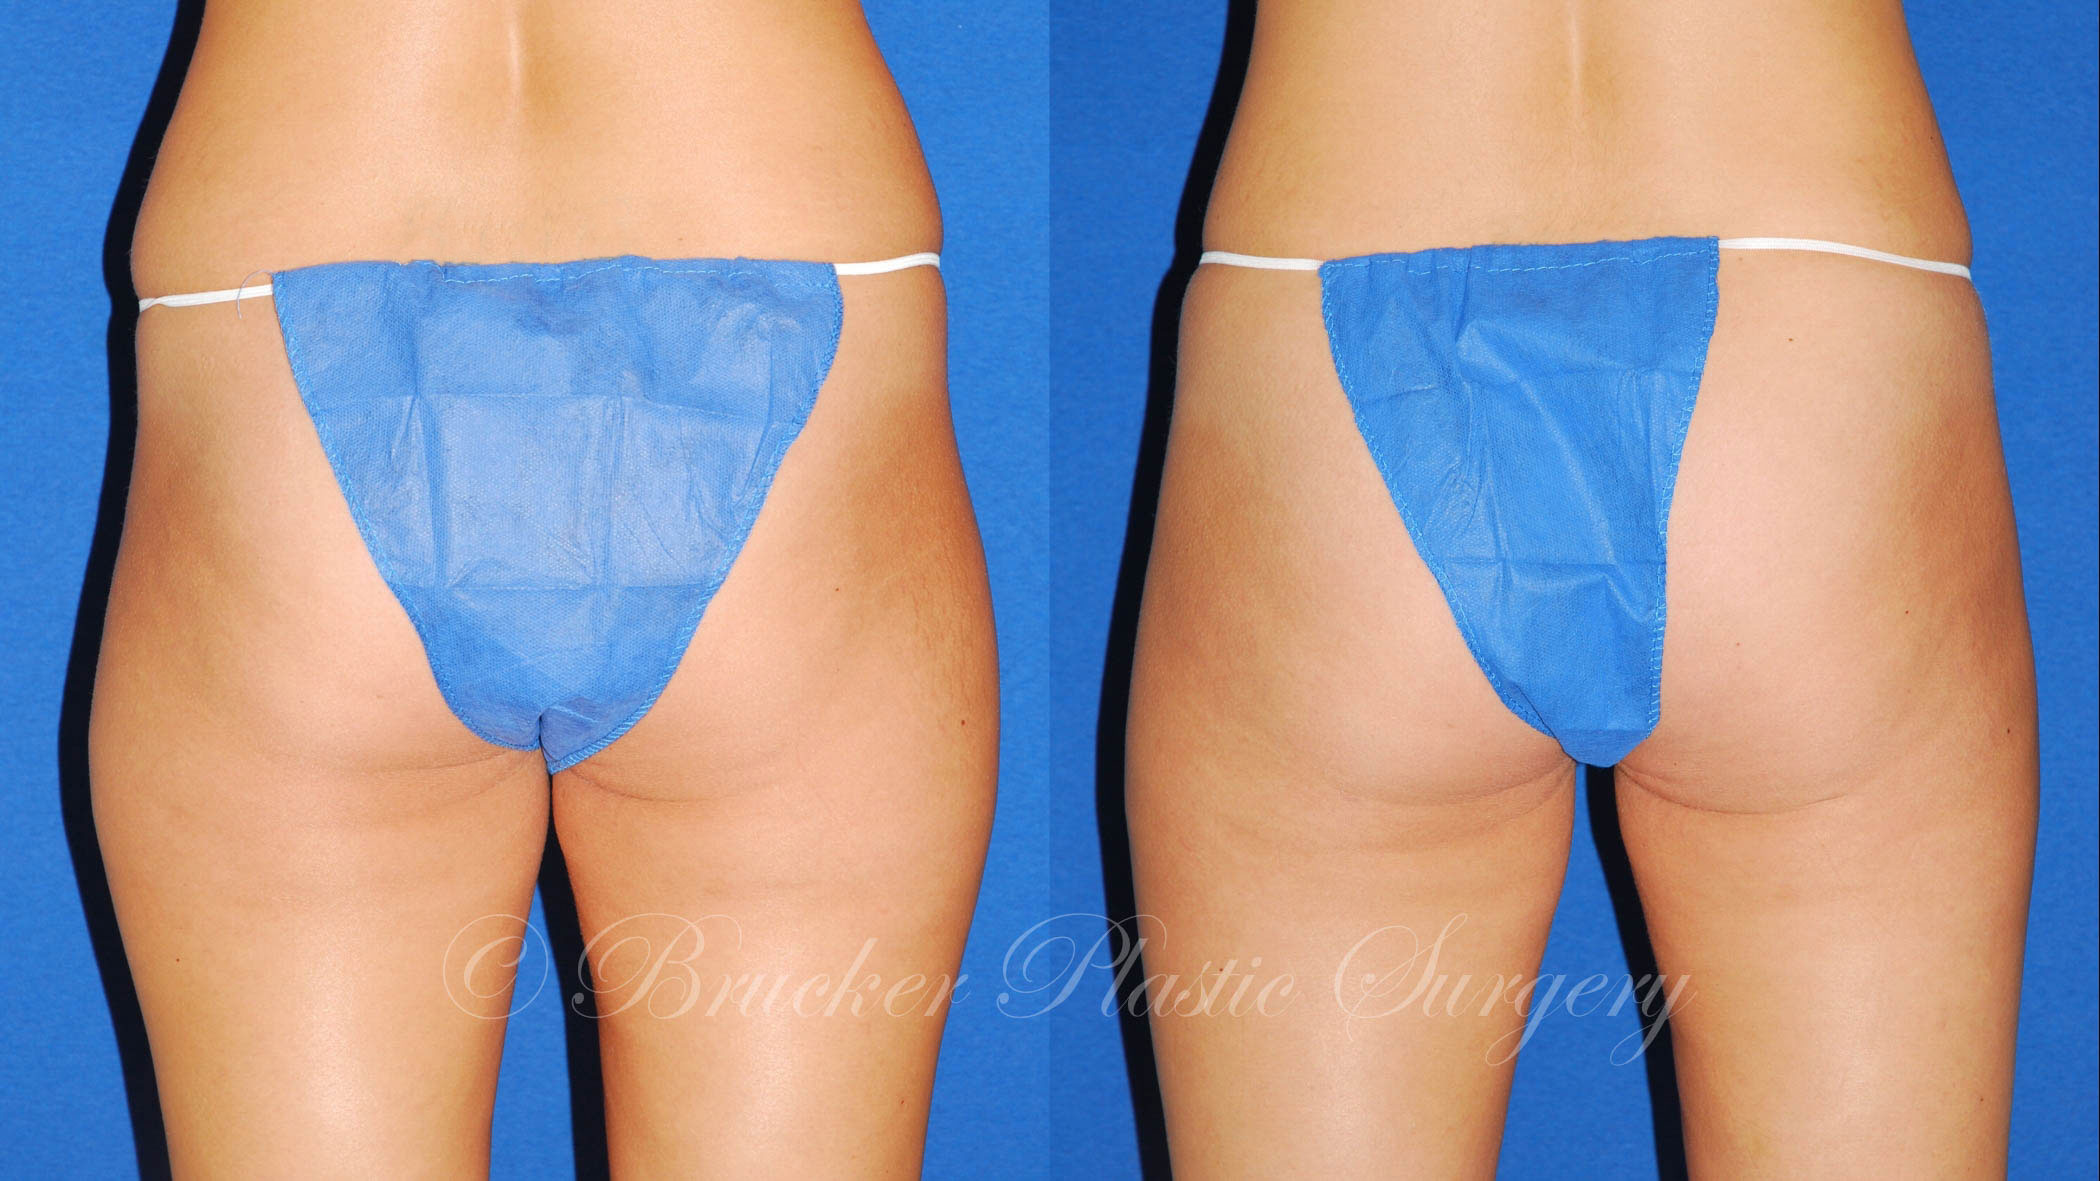 Liposuction La Jolla Patient 2.2